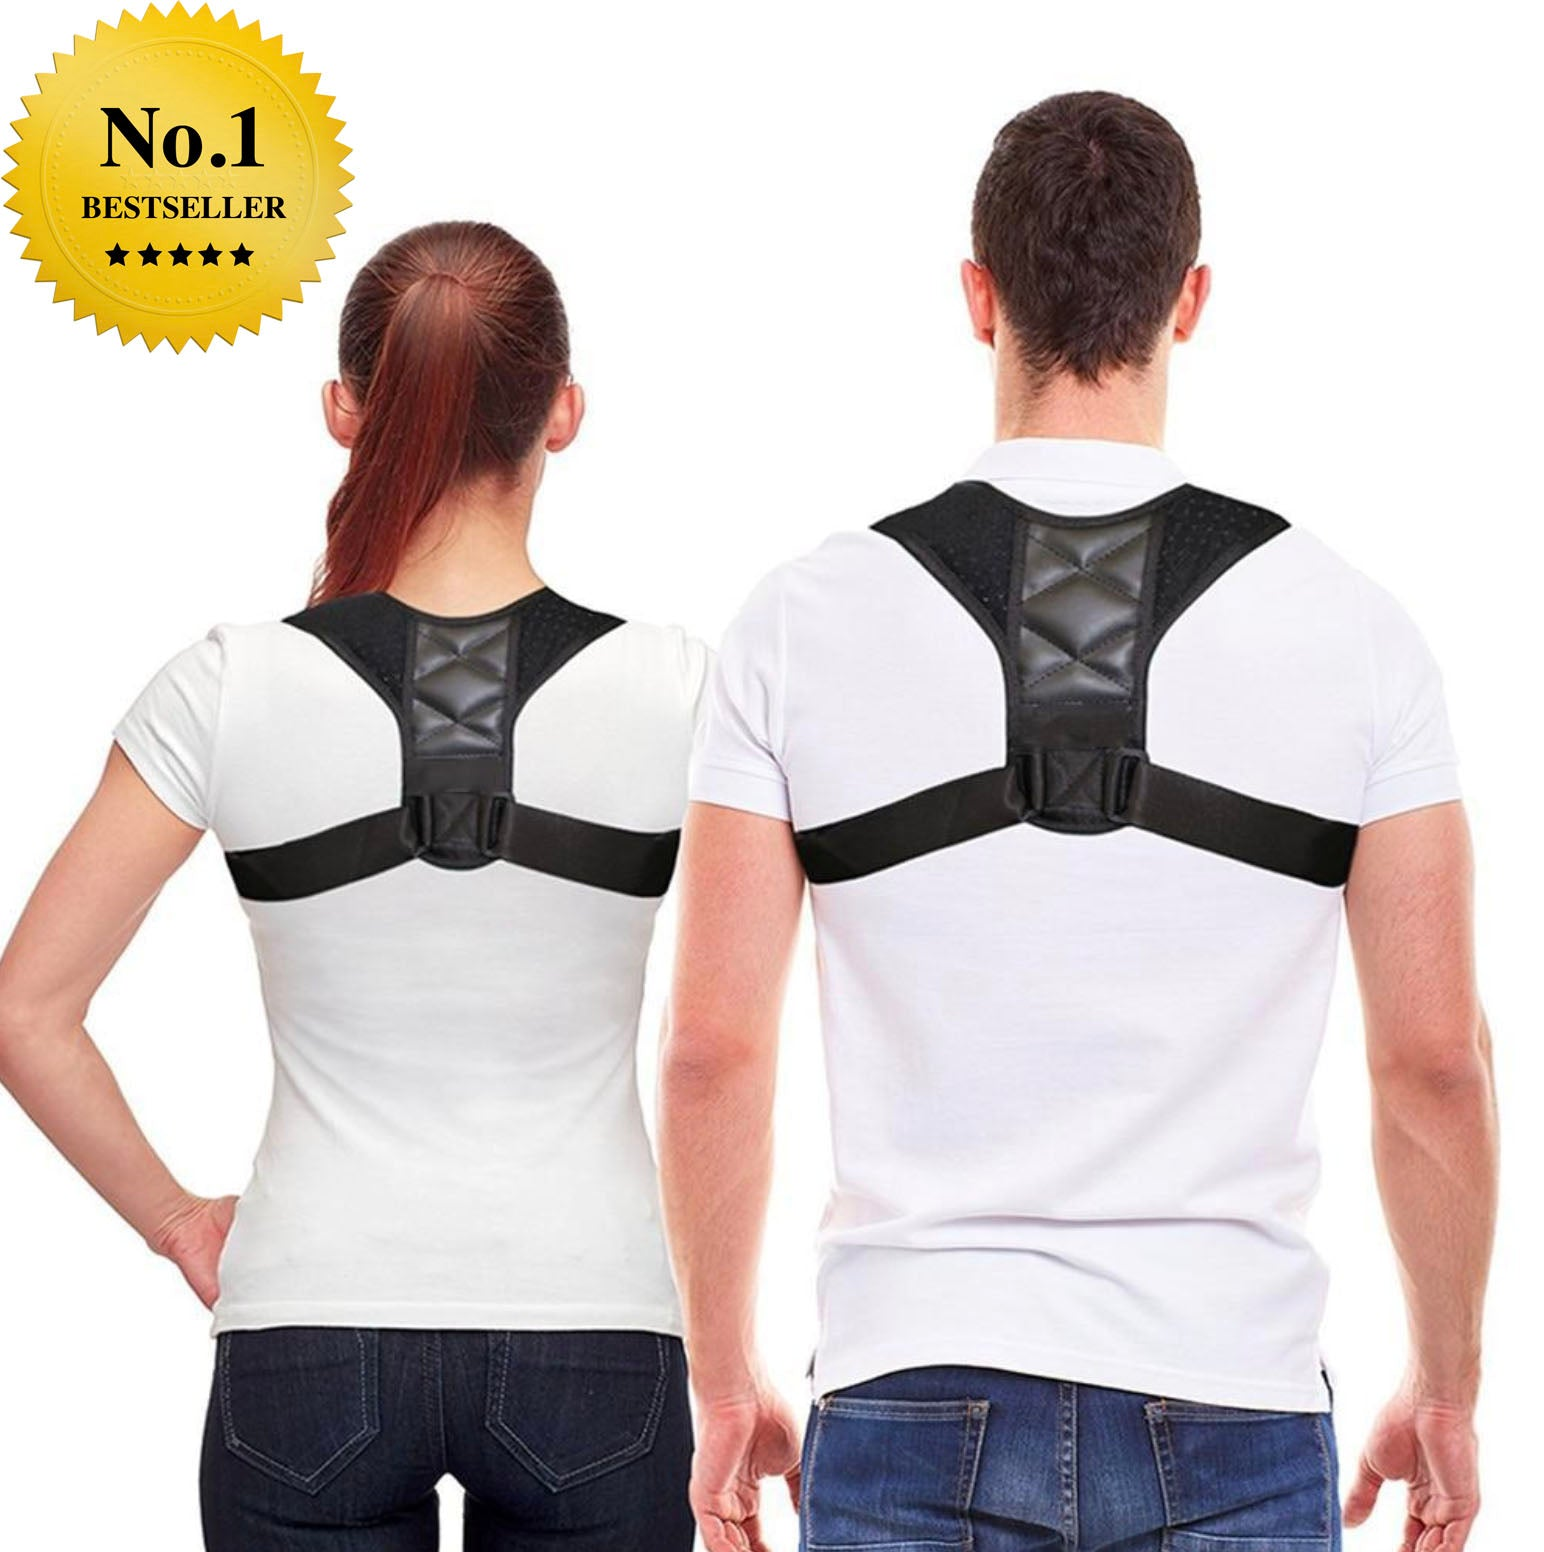 COMFORT Clavicle & Shoulder Support Braces [Premium]